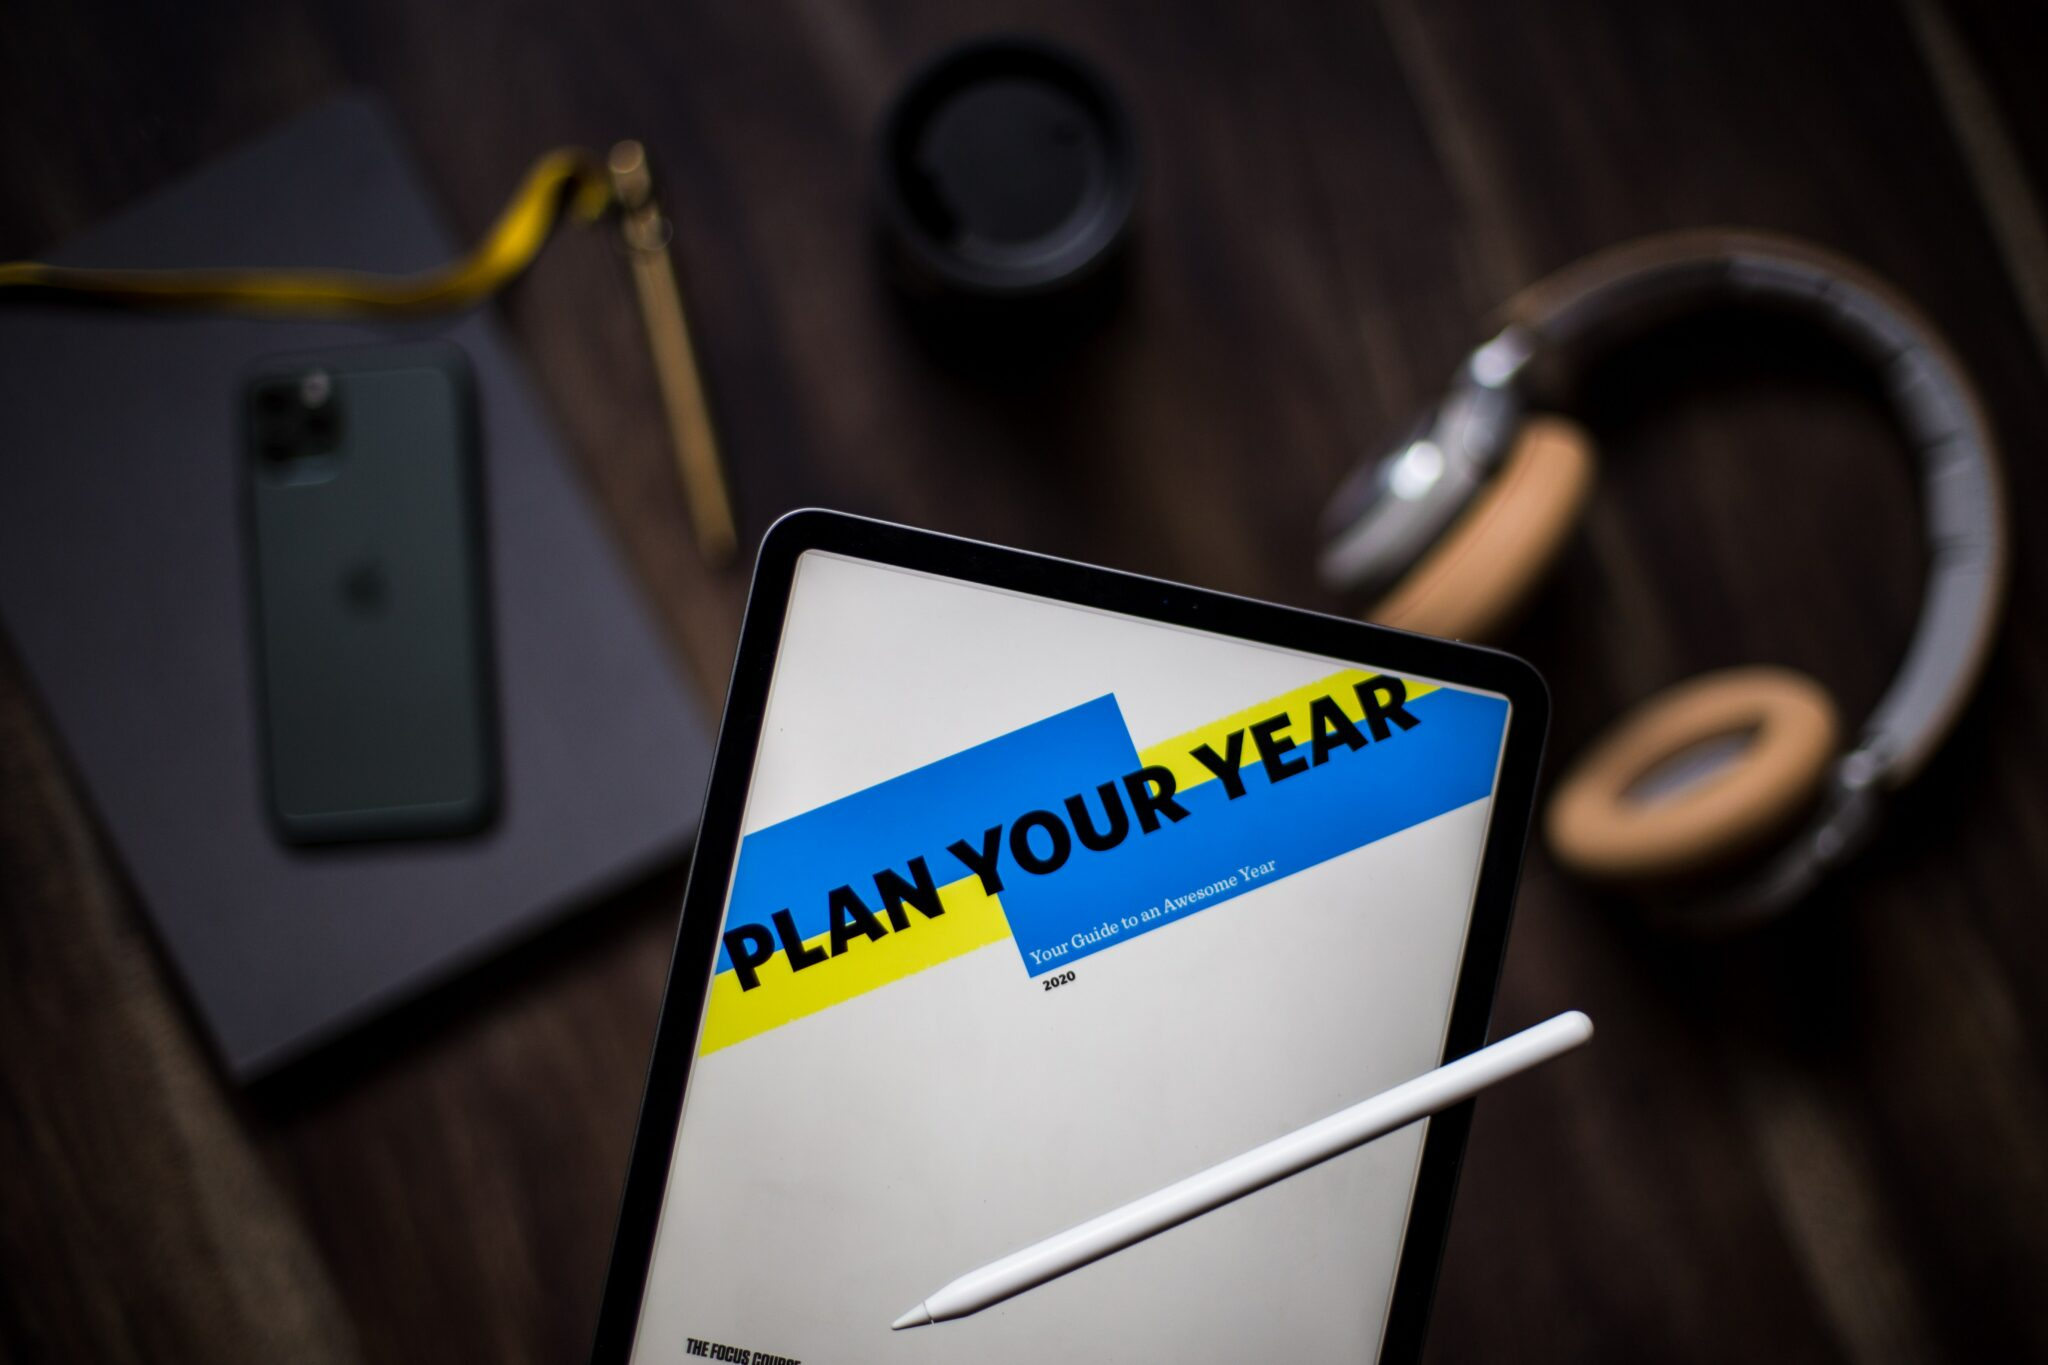 plan-your-year-2020